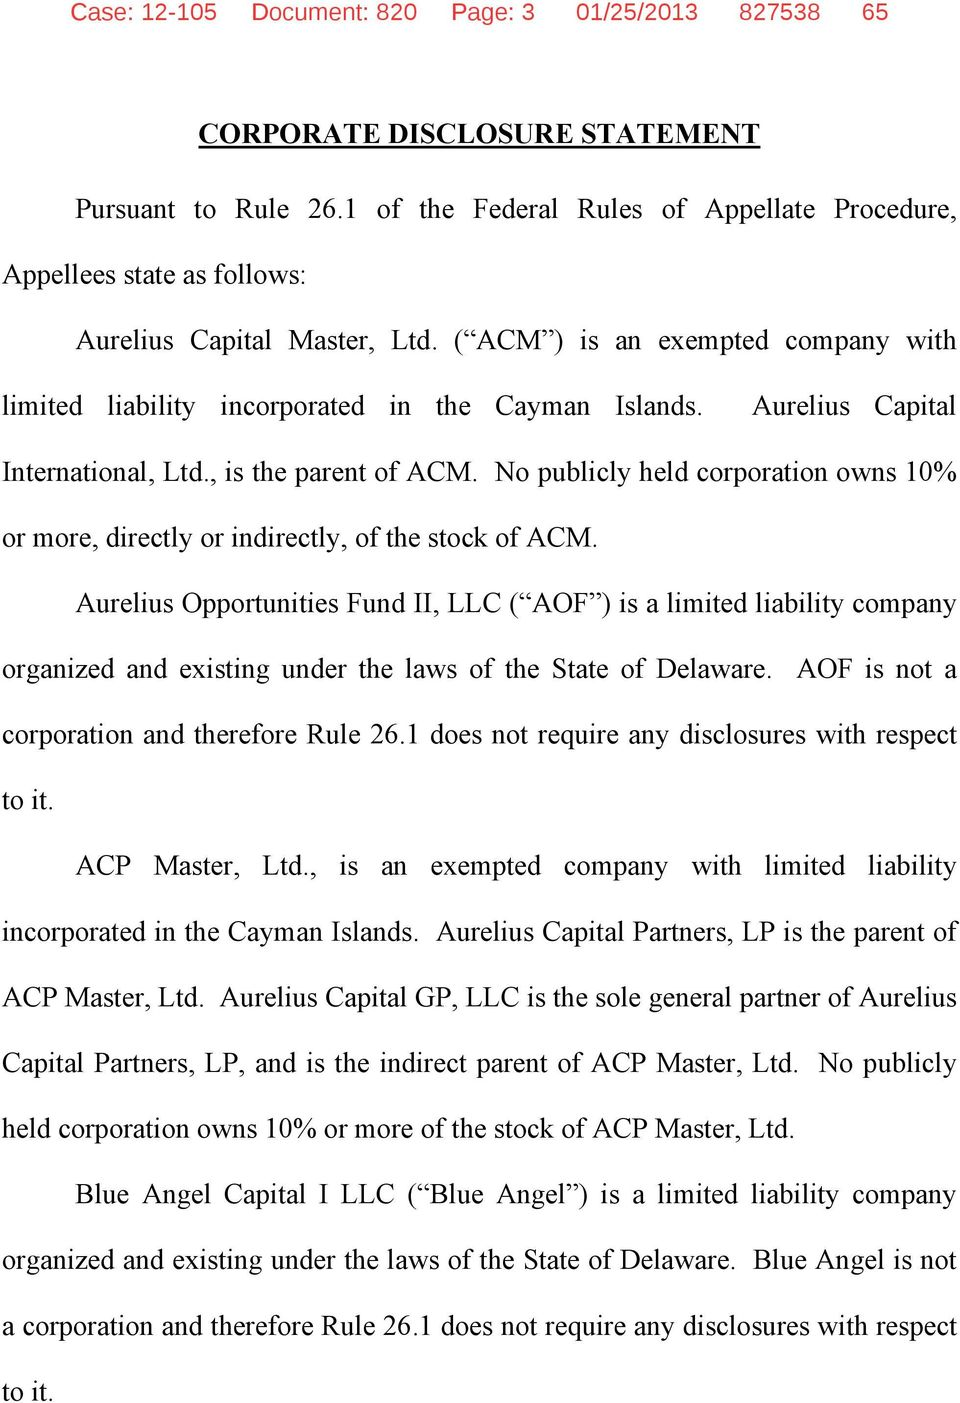 Aurelius Capital International, Ltd., is the parent of ACM. No publicly held corporation owns 10% or more, directly or indirectly, of the stock of ACM.